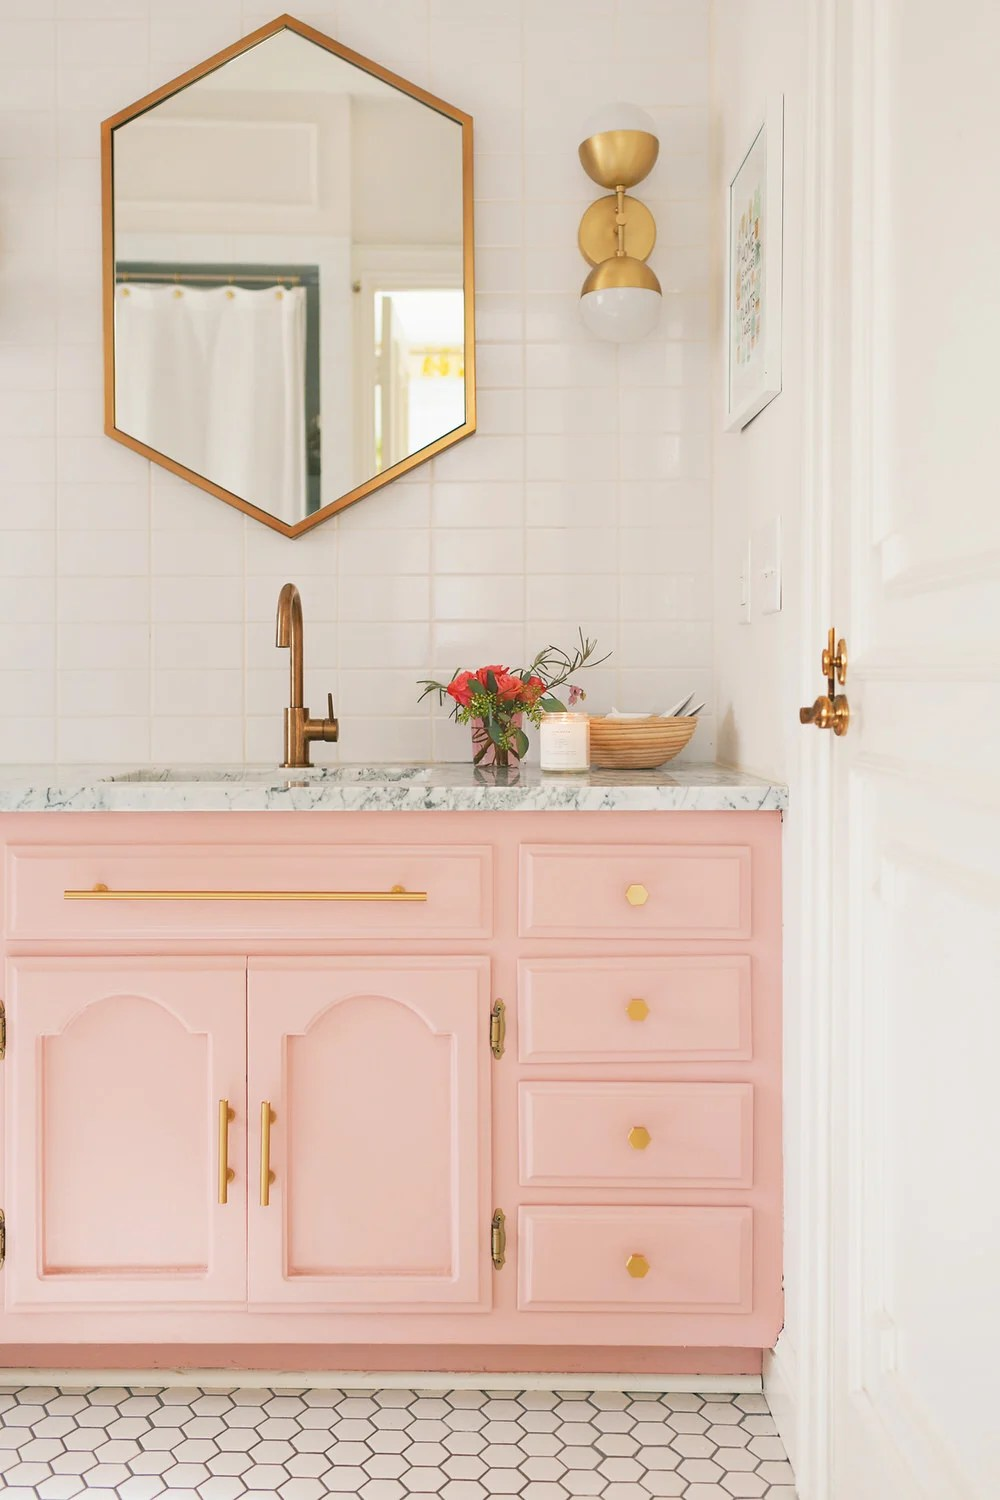 Small Bathroom Ideas & DIY Projects | Decorating Your ... on Nice Bathroom Designs For Small Spaces  id=79426